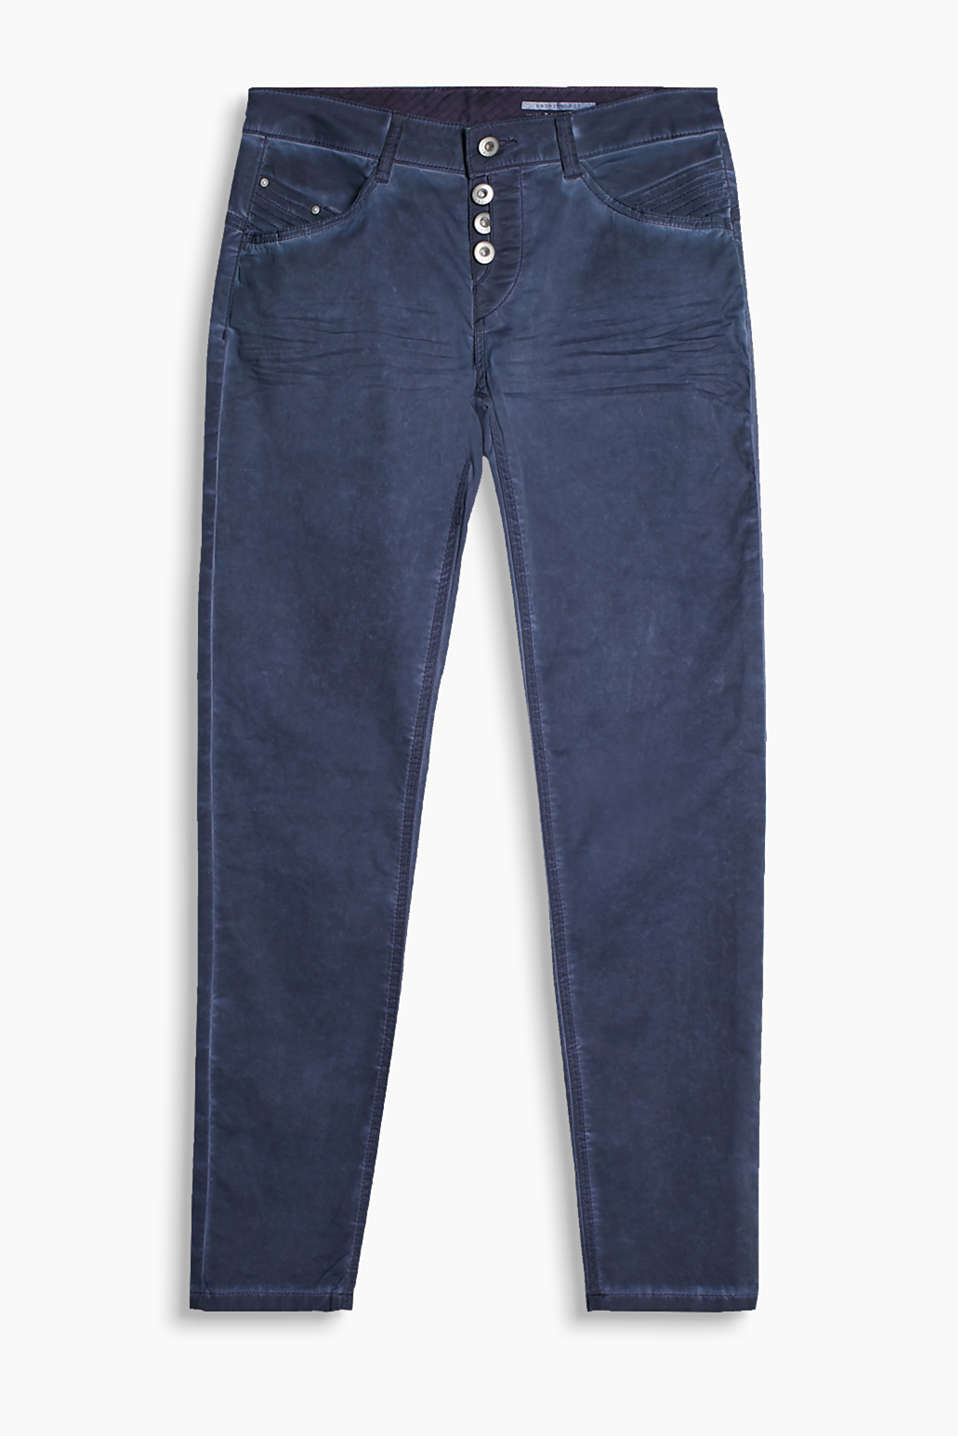 Casually styled five-pocket trousers with a visible button fly and decorative stitching